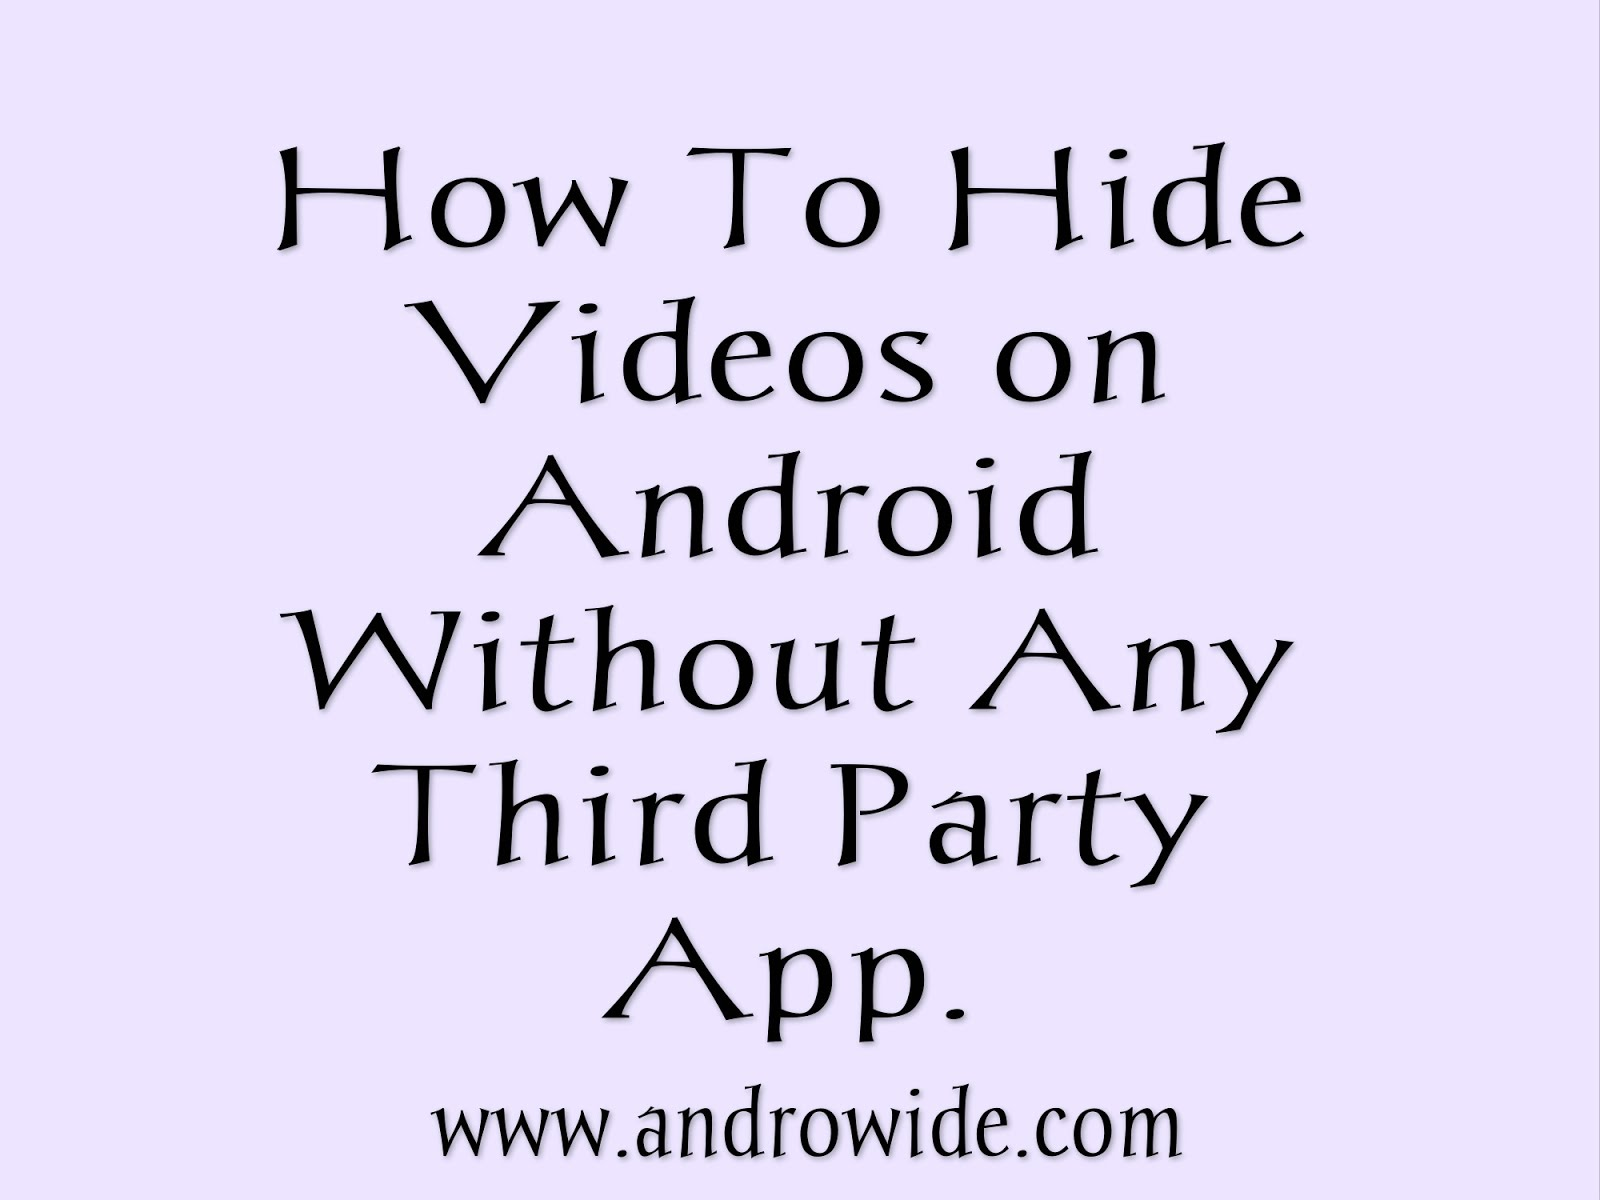 Hide videos on android without app